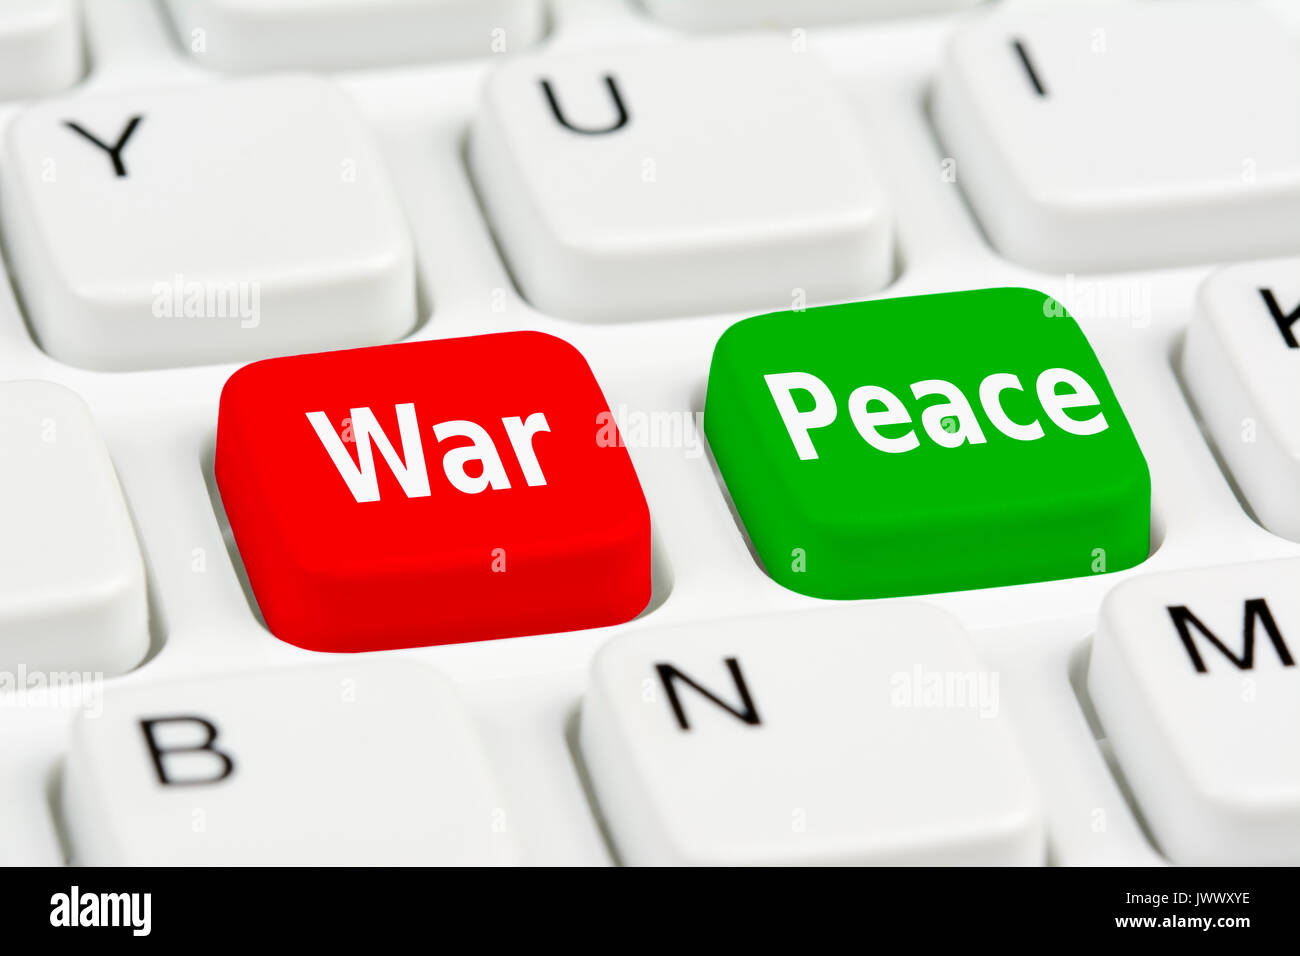 War and Peace buttons on a computer keyboard. - Stock Image